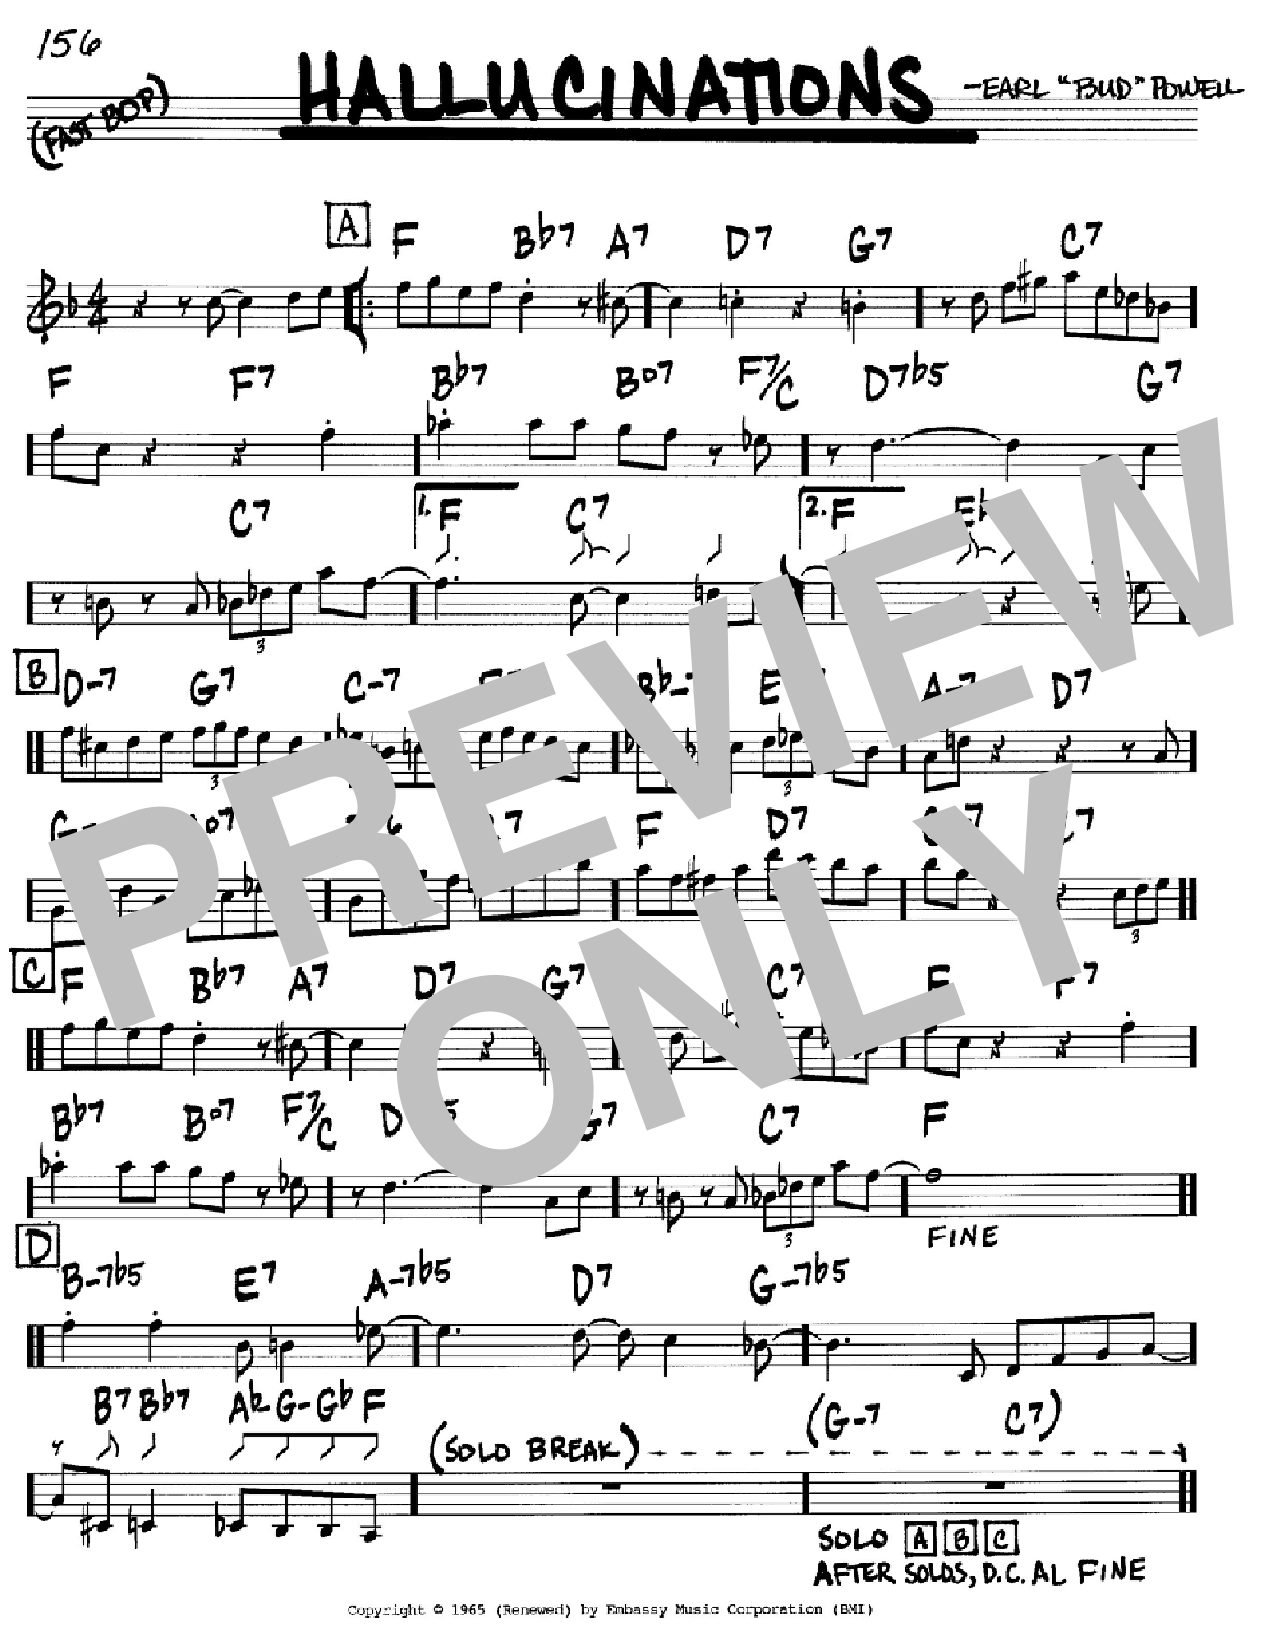 Hallucinations Sheet Music